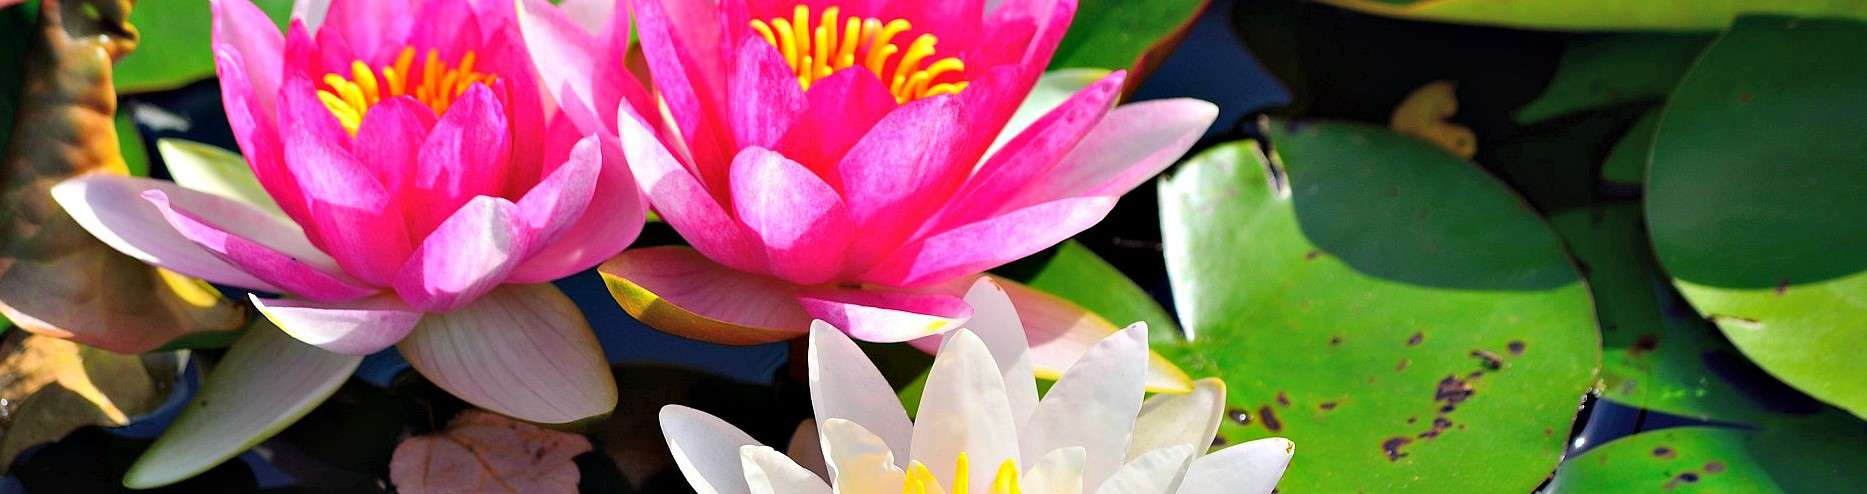 Lotus effect or self cleaning leaves izmirmasajfo